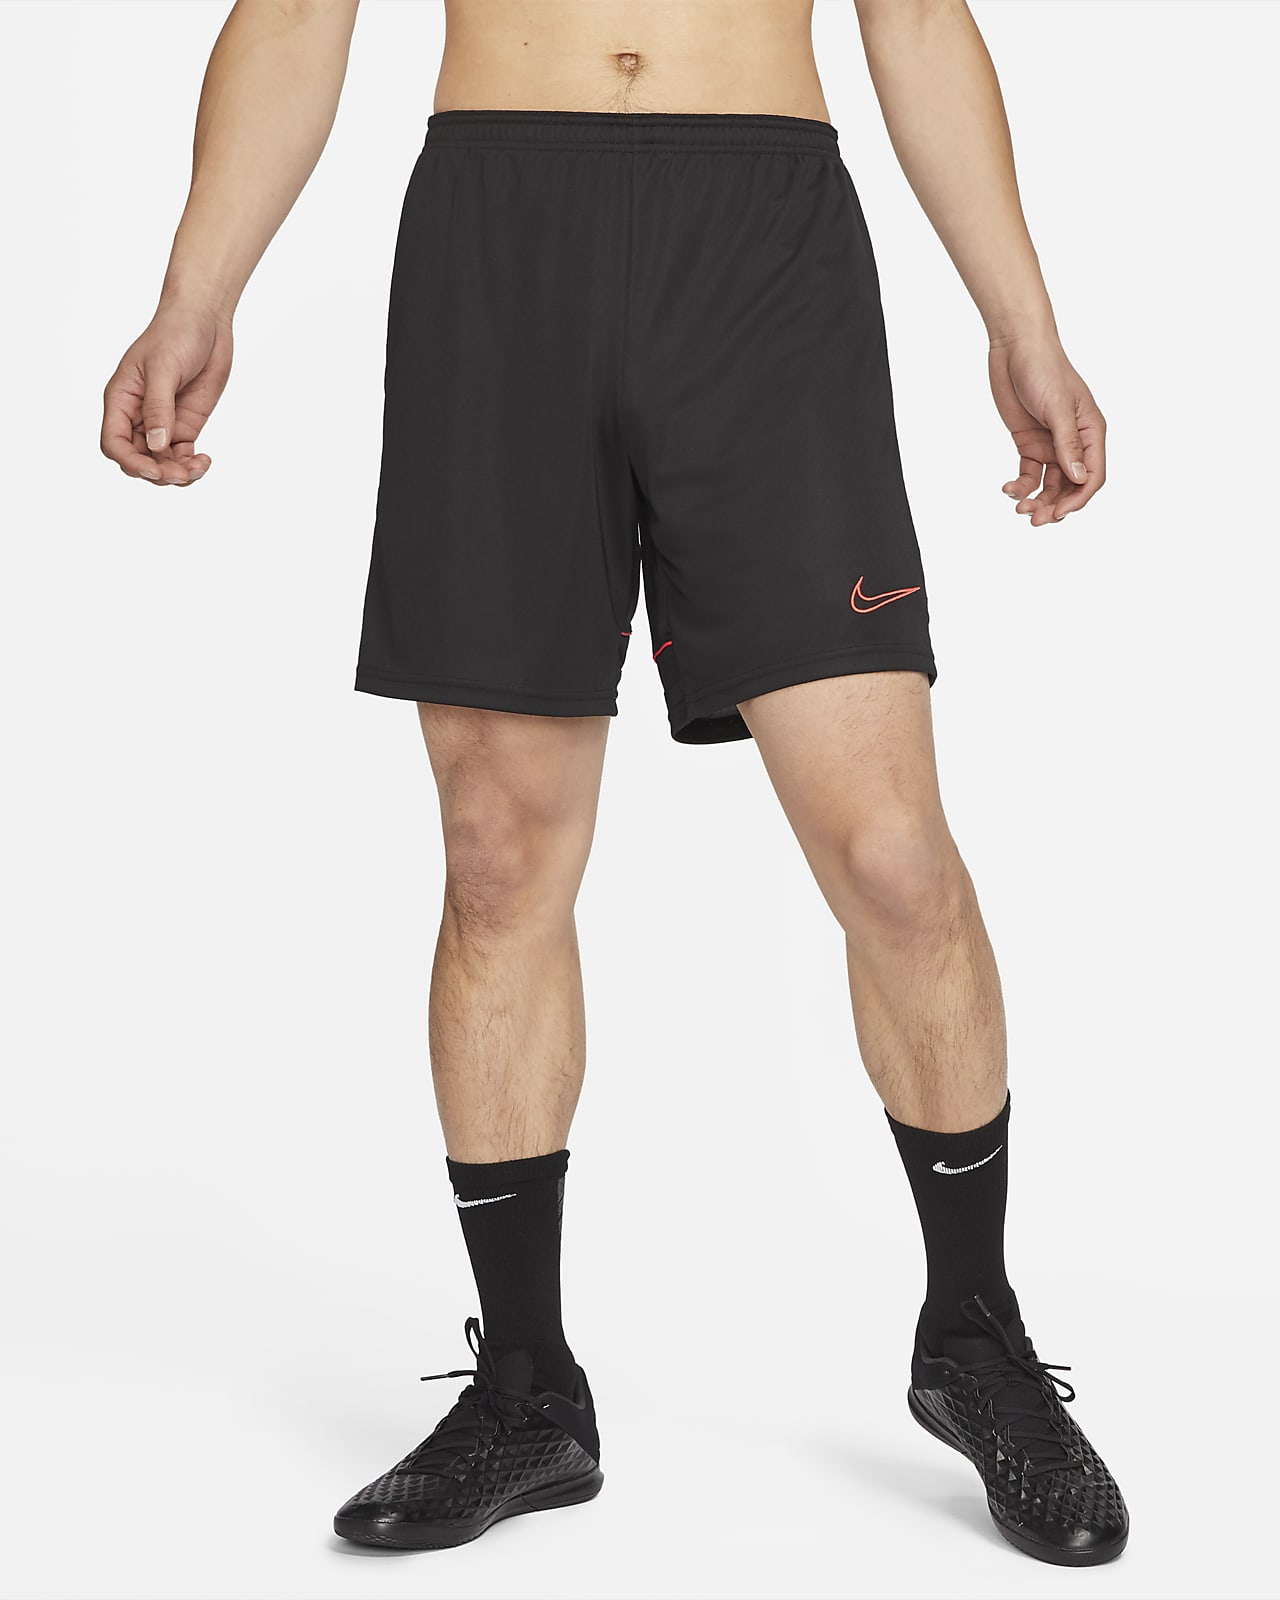 Nike Dri-FIT Academy Men's Knit Soccer Shorts